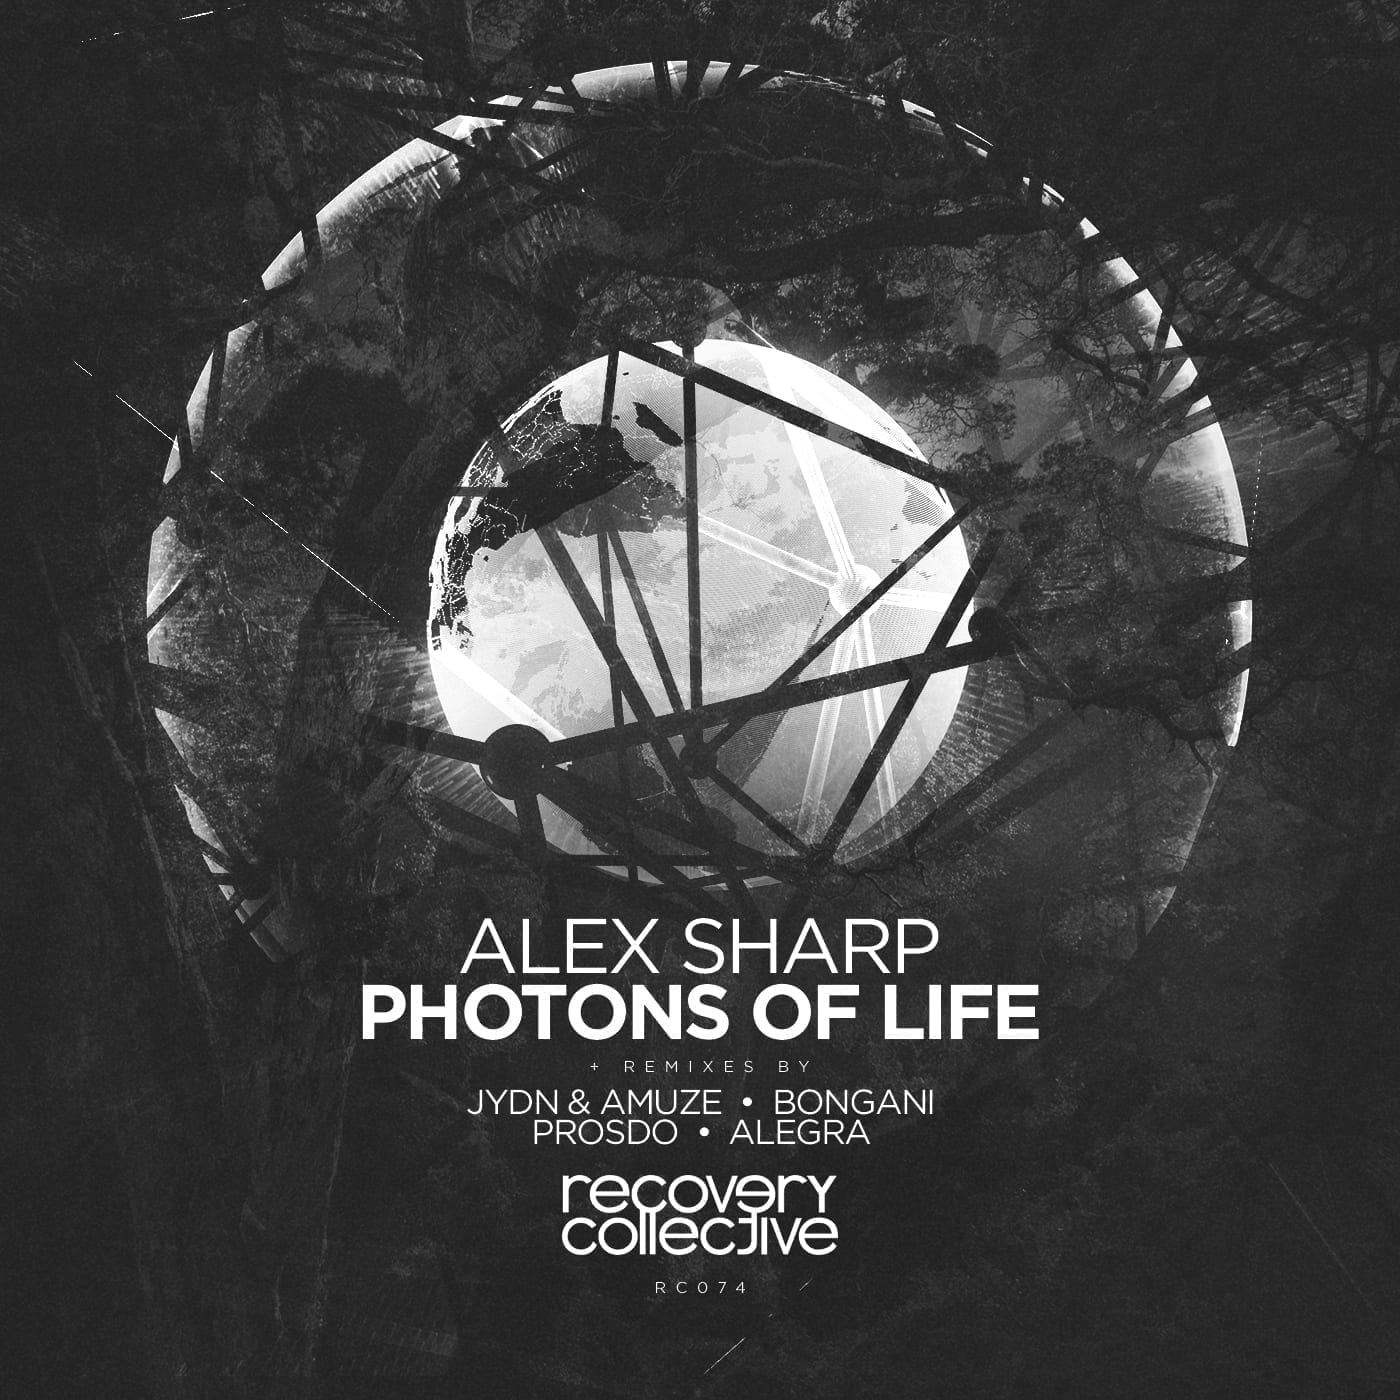 """Recovery Collective presents """"Photons Of Life"""" by Alex Sharp"""